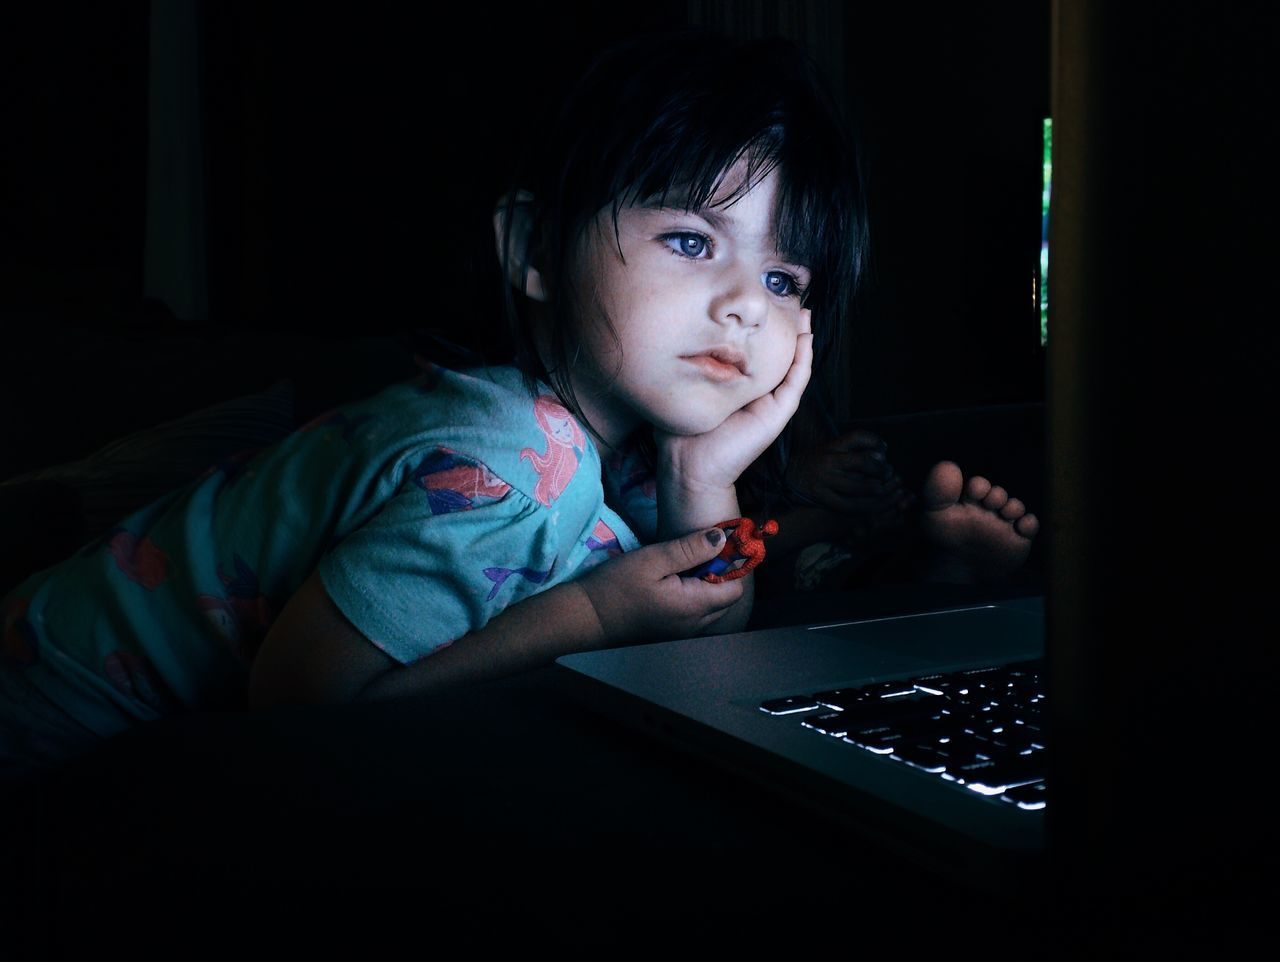 Girl with hand on chin looking at laptop